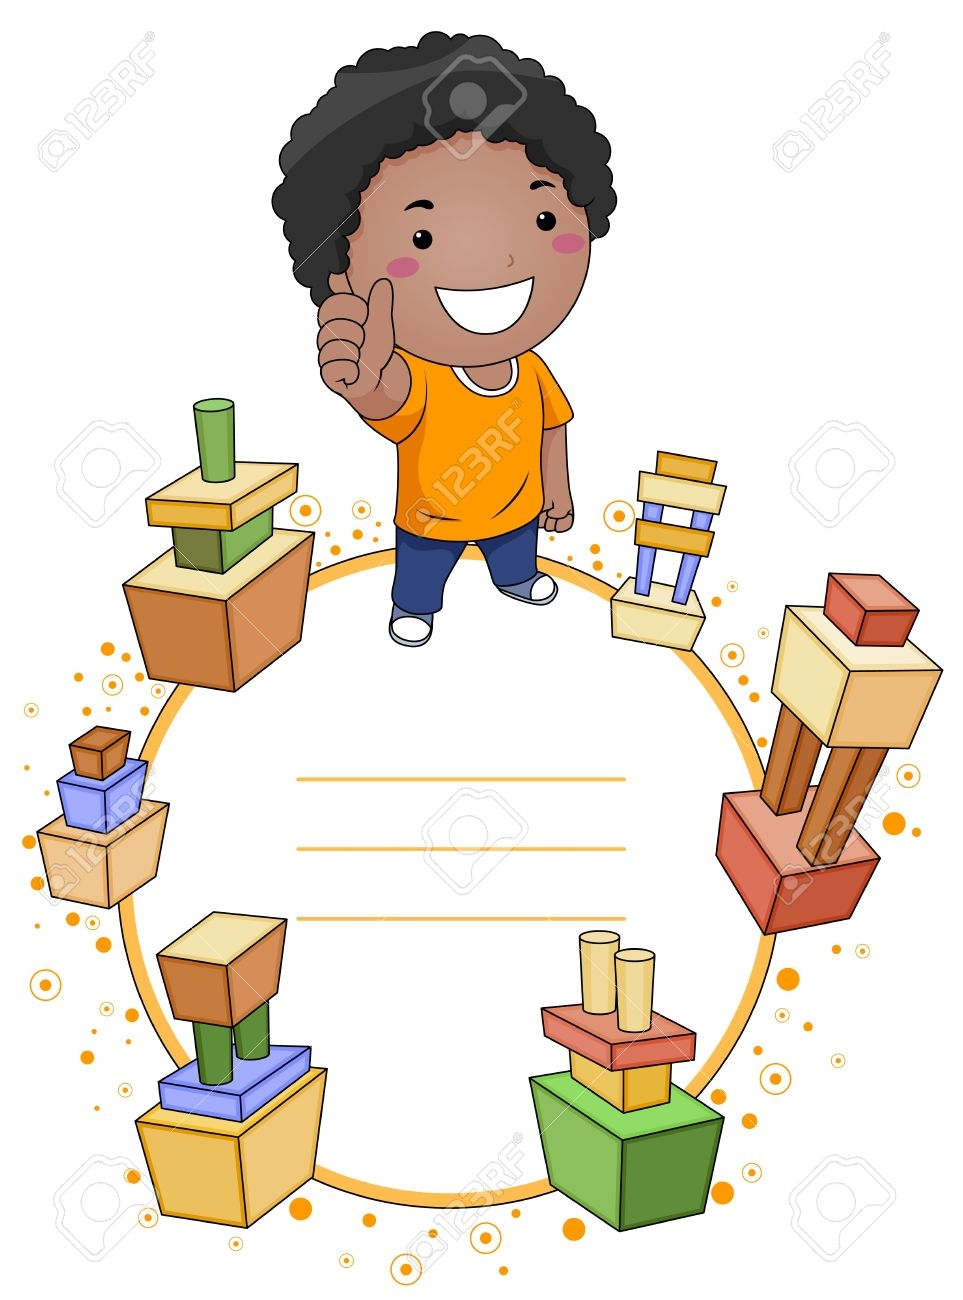 Kids building blocks clipart vector stock Kids Building Blocks Clipart - clipartsgram.com vector stock